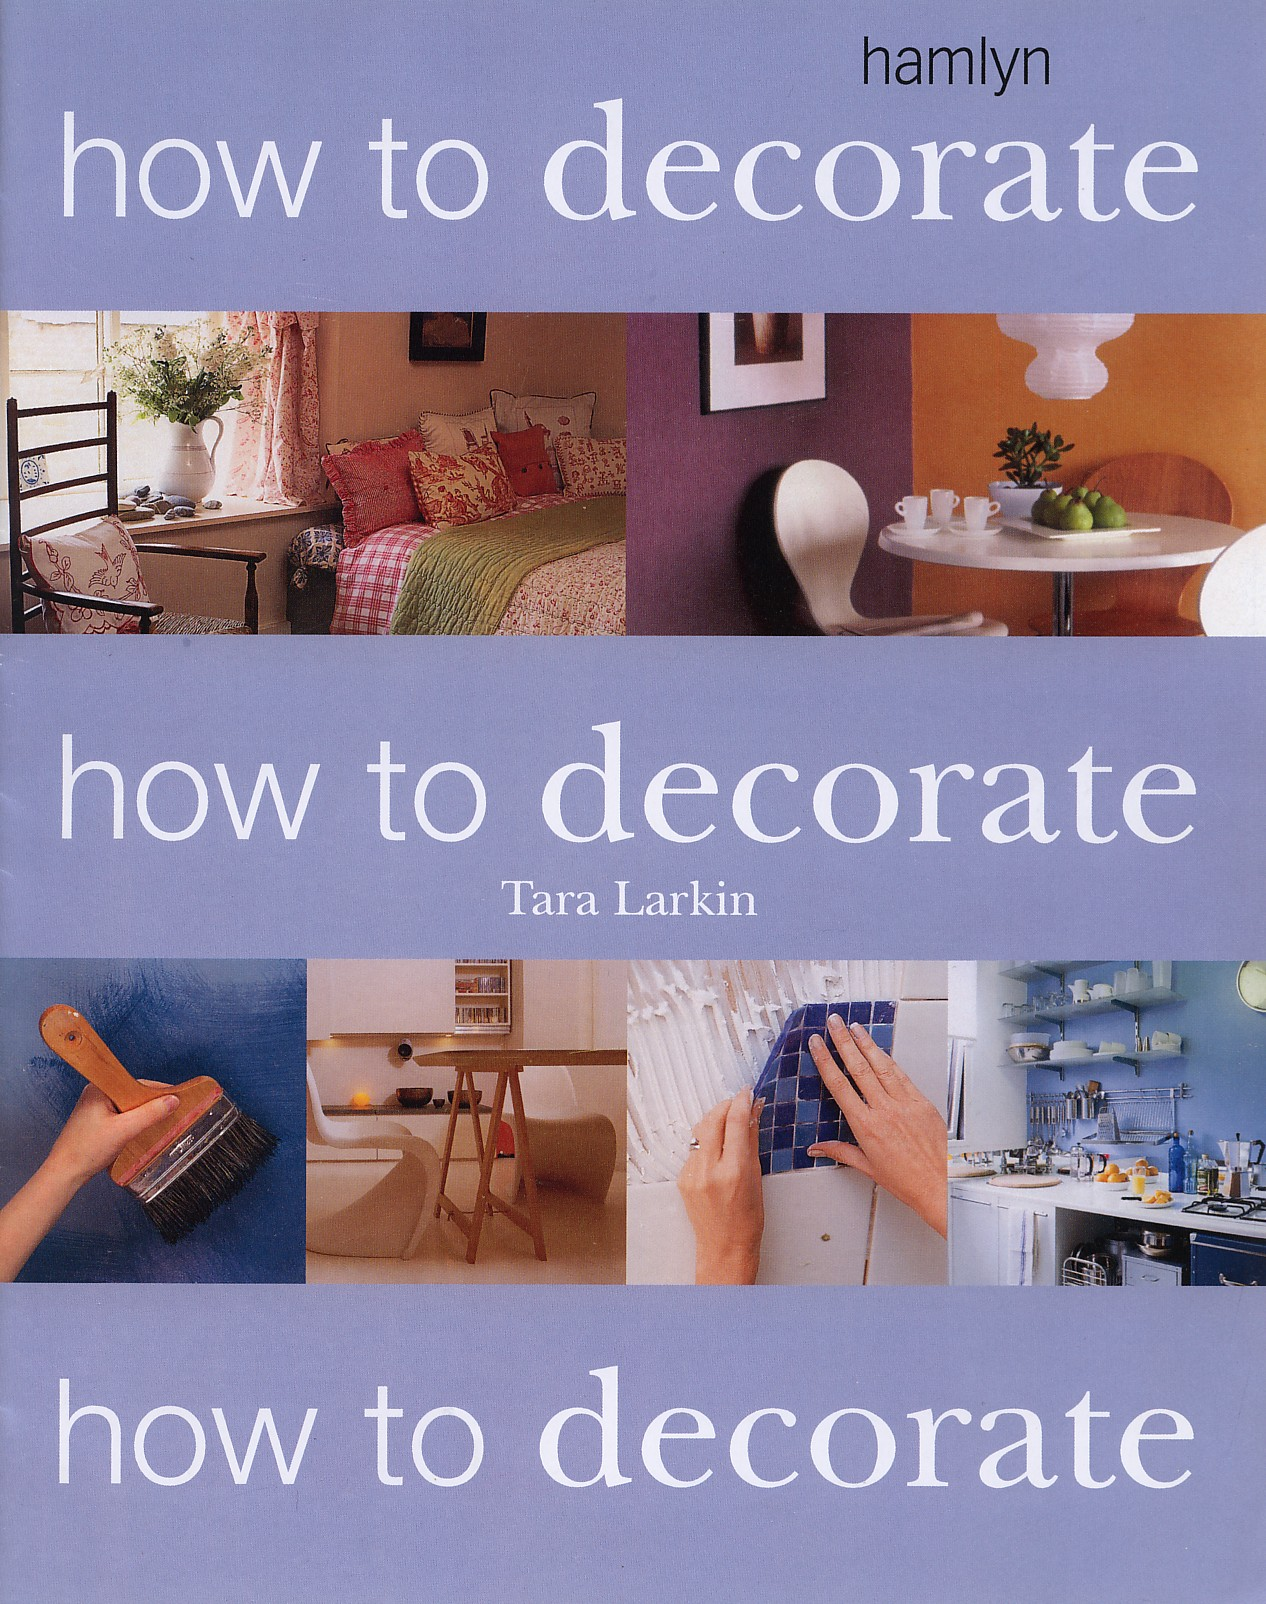 How_to_decorate.jpg